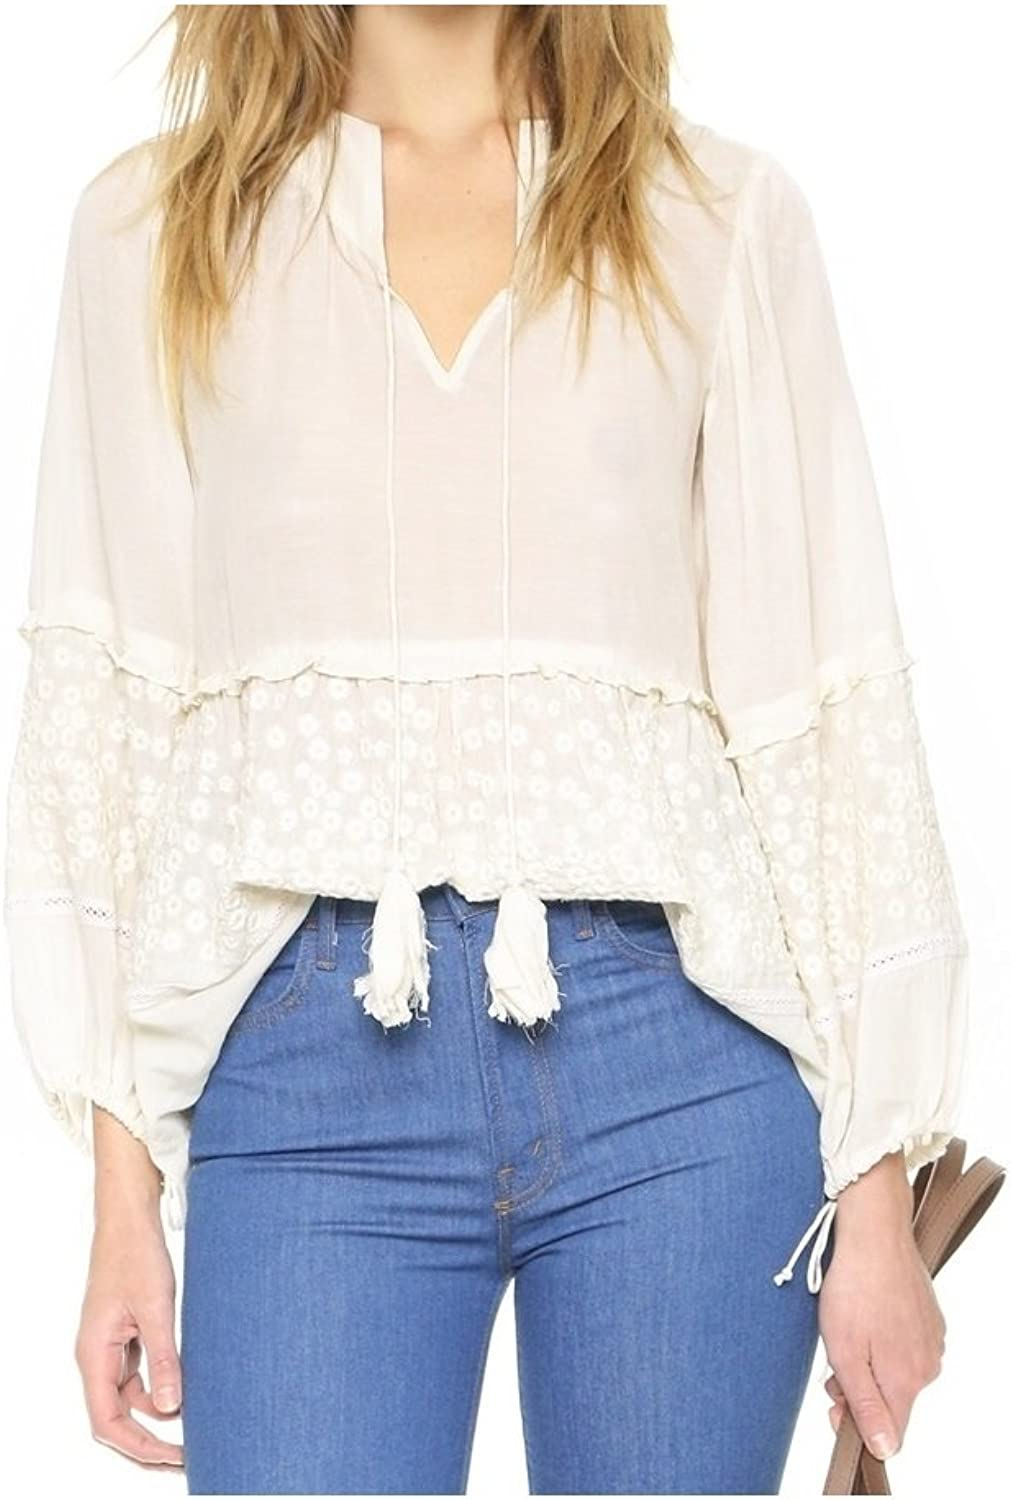 Pepin Women's Ava Romantic Floral Embroidered Voile Blouse Tunic in Eggshell